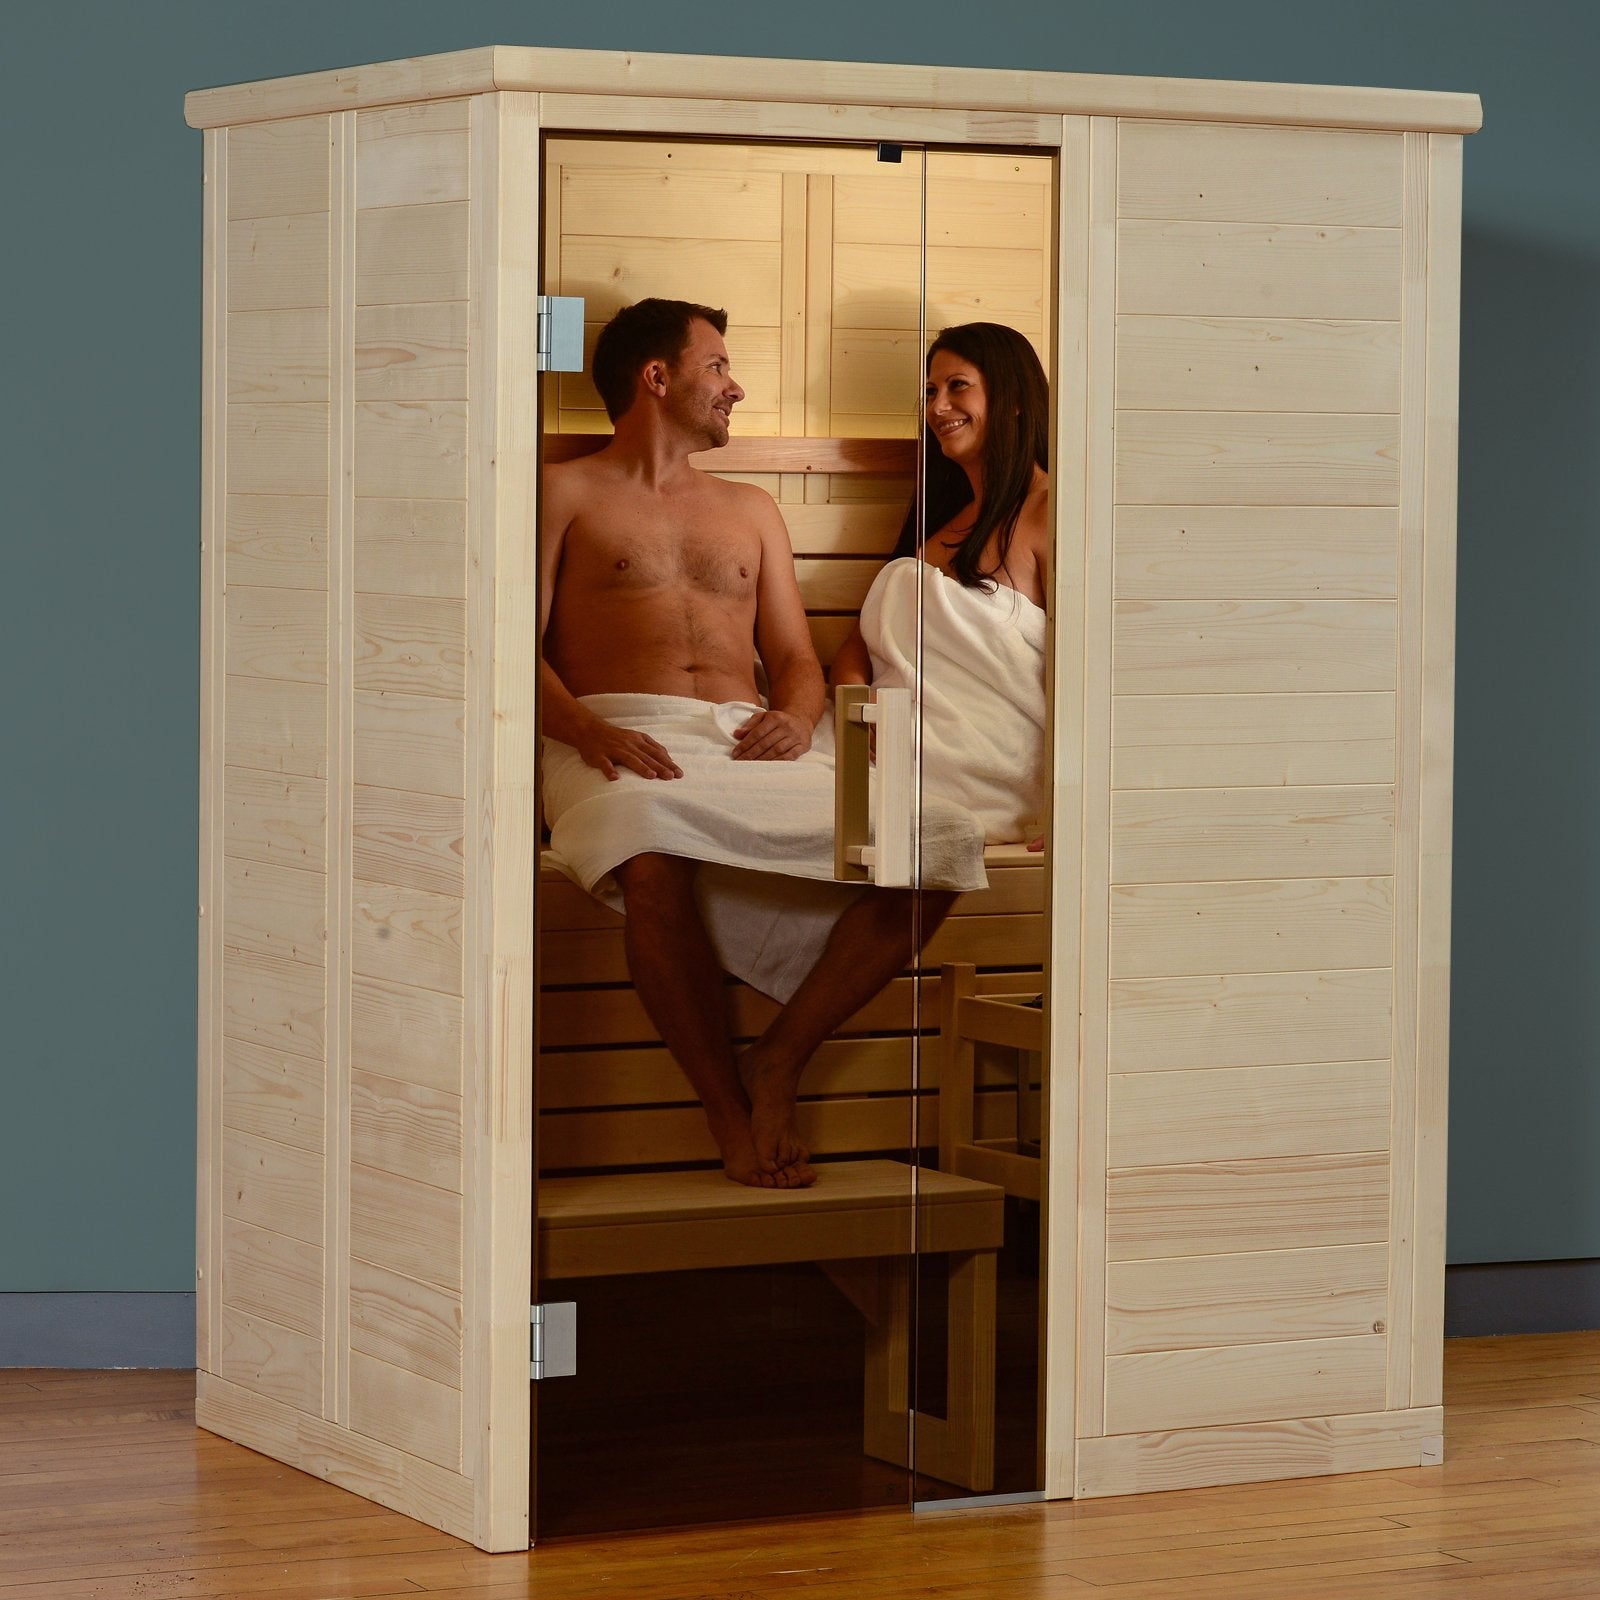 Almost Heaven Hillsboro 2 Person Indoor Sauna - My Sauna World